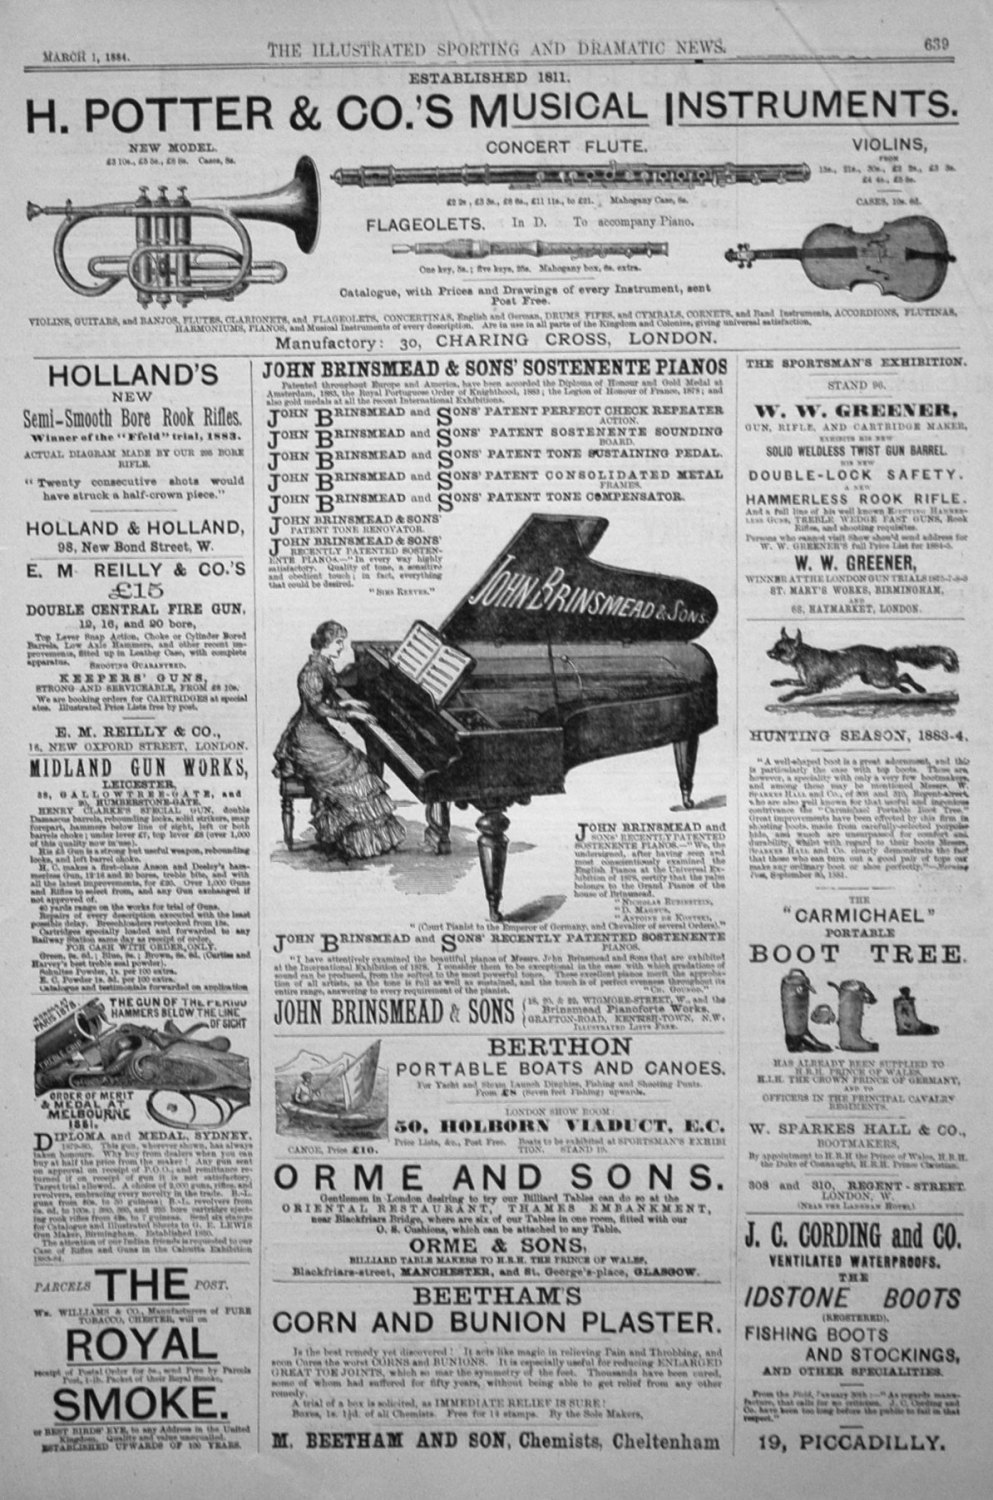 Adverts. Illustrated Sporting and Dramatic News March 1st 1884.